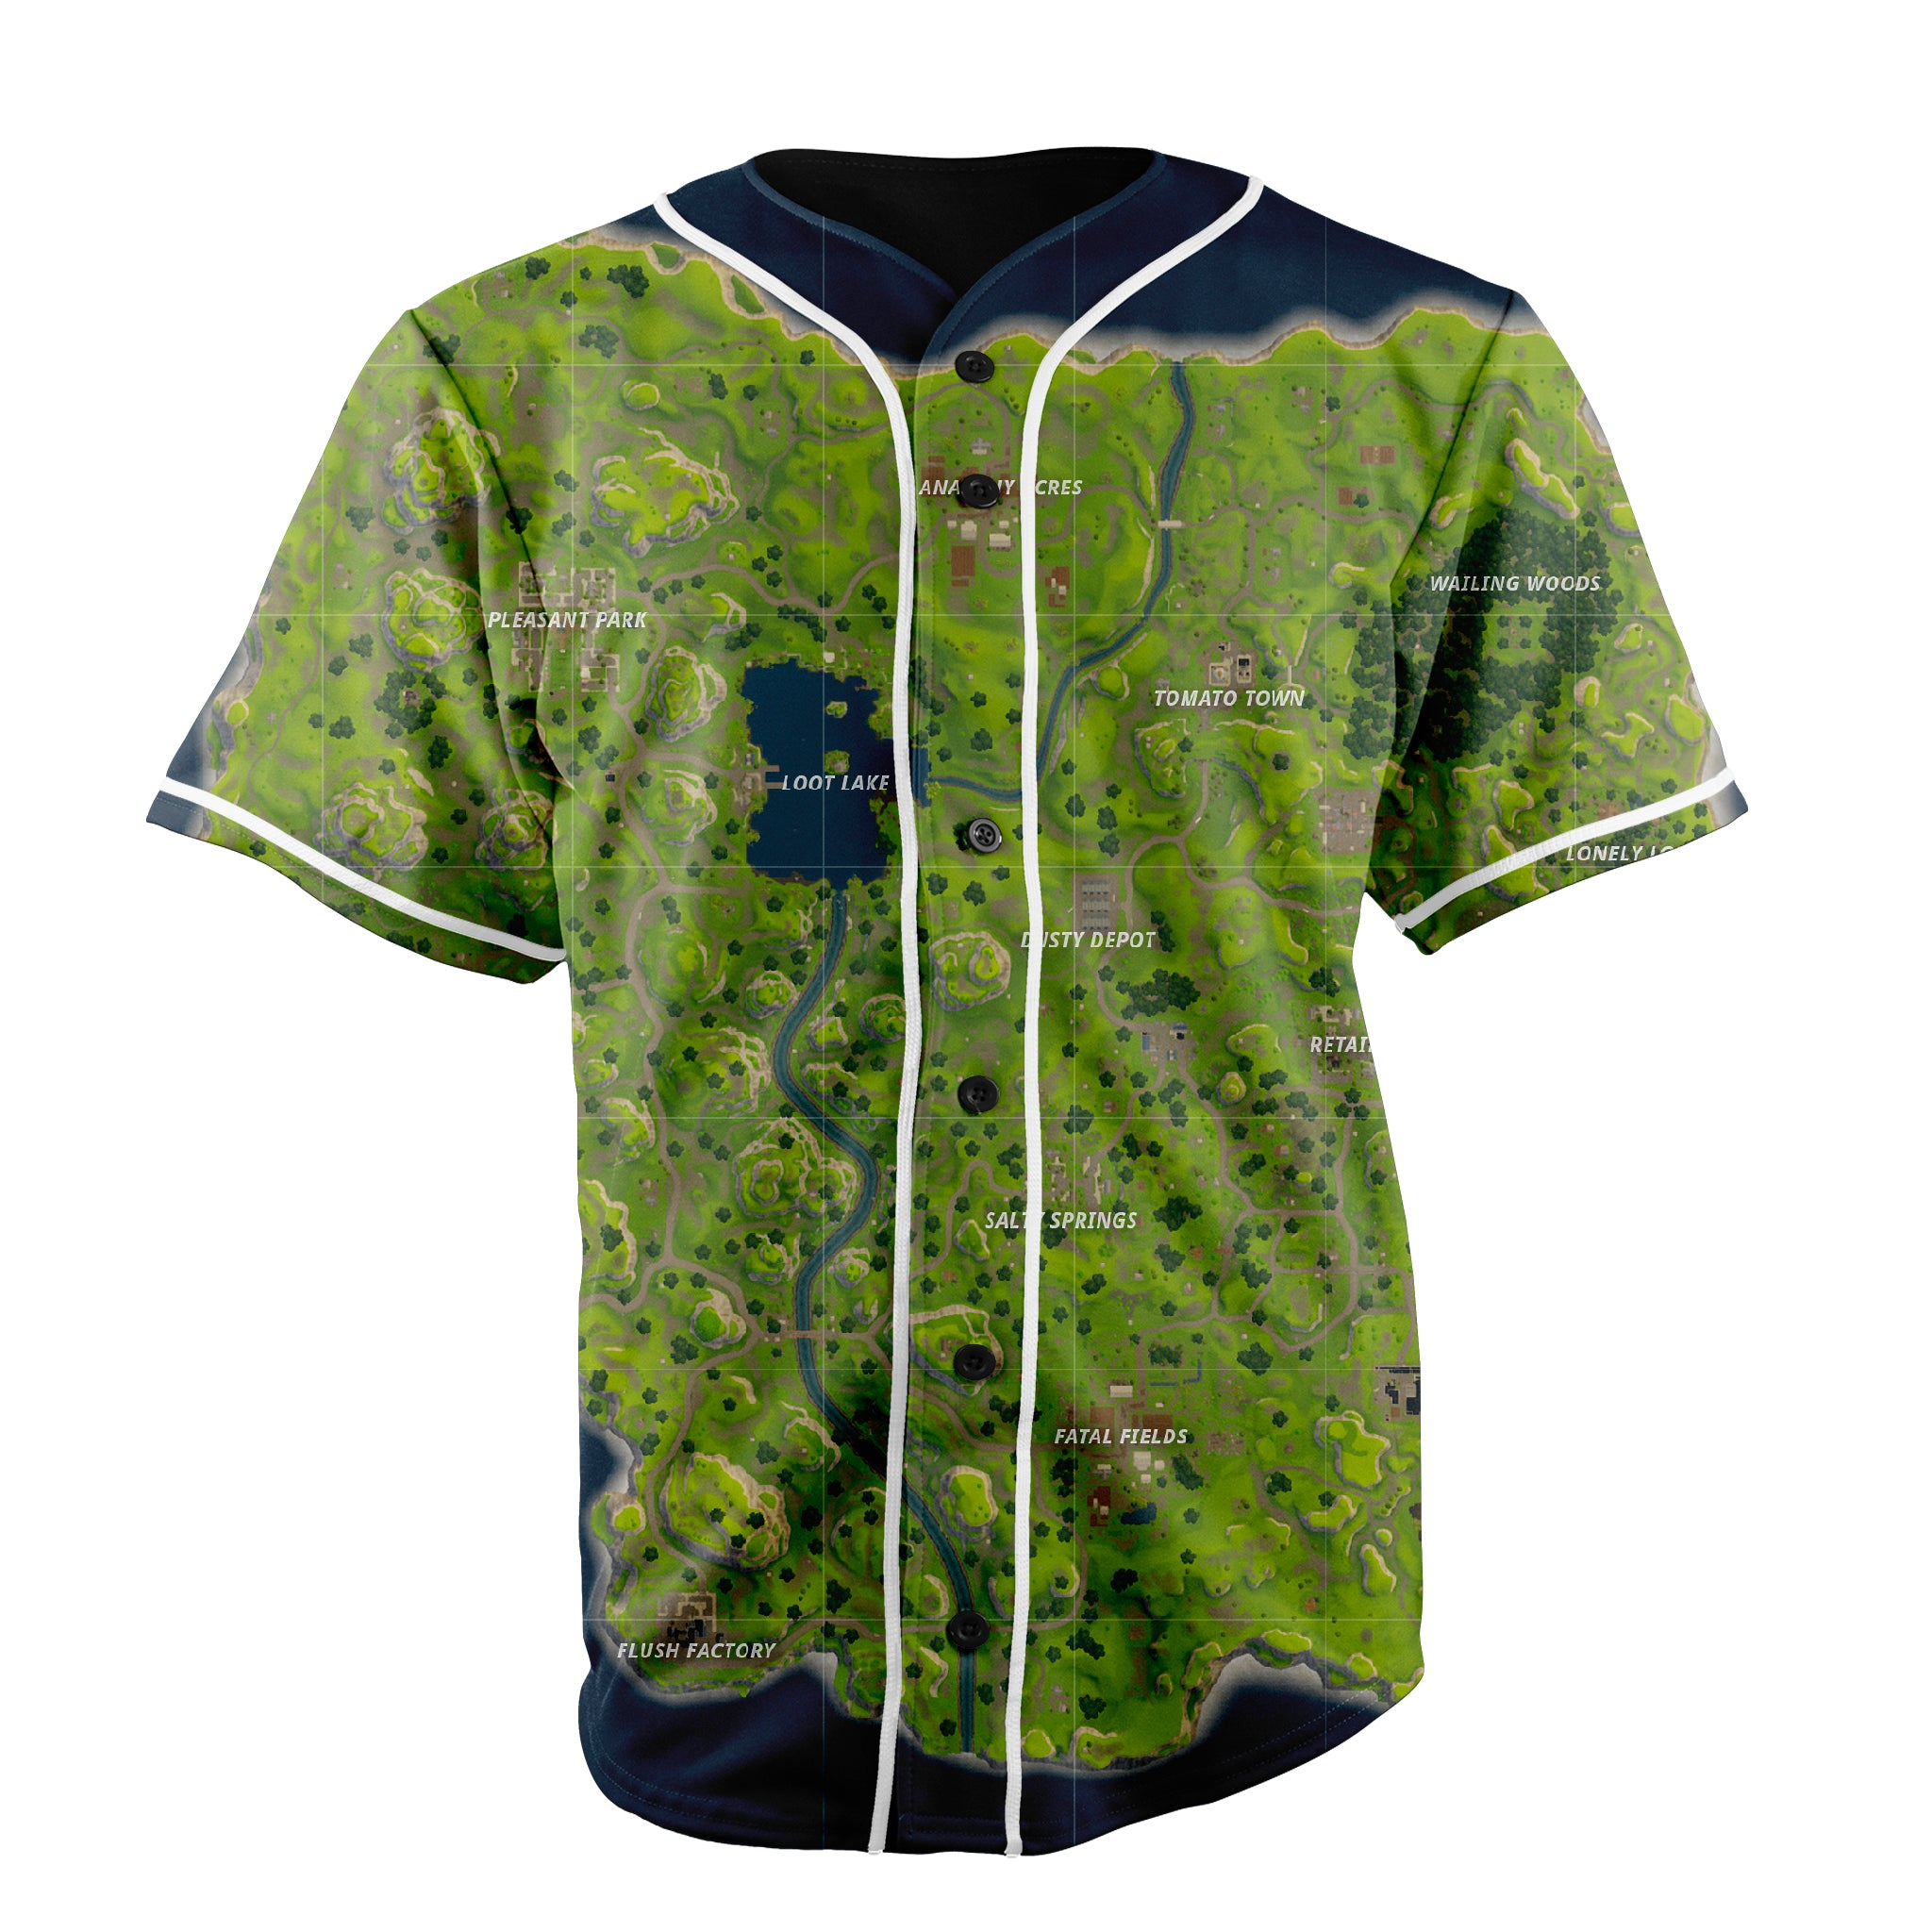 Battle Royale Jersey